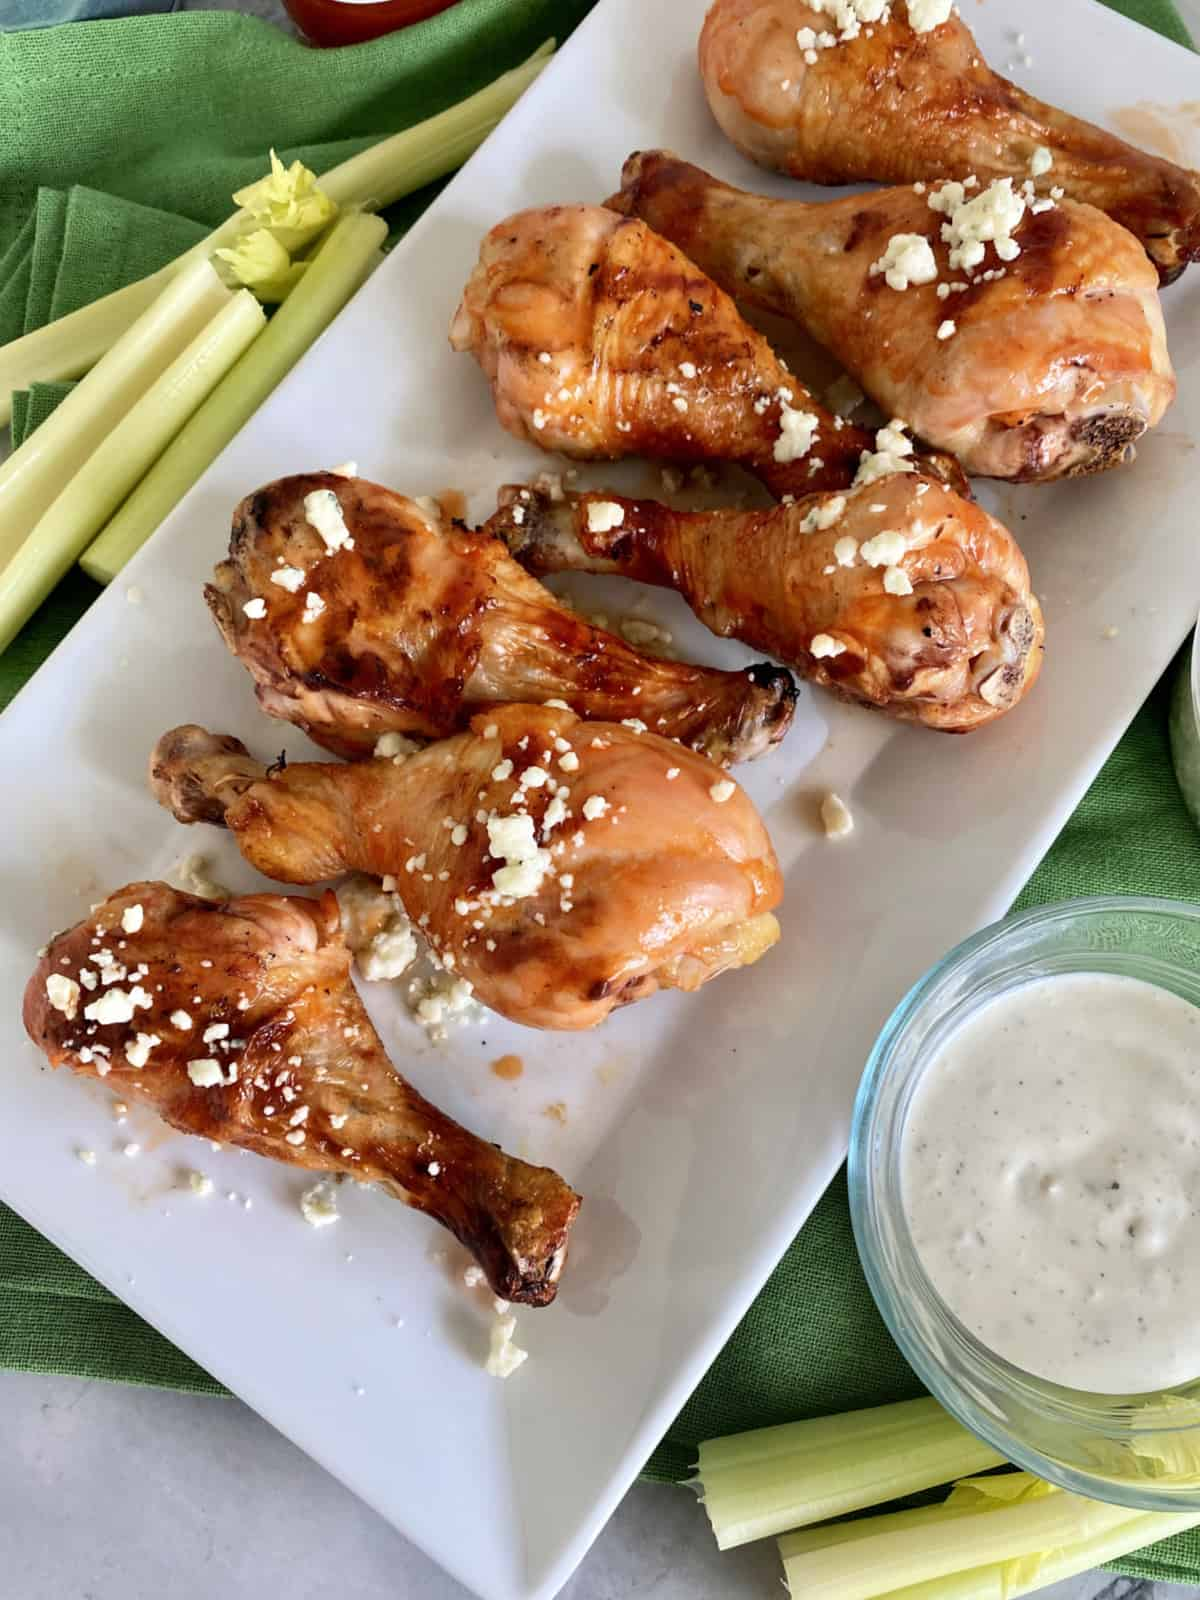 Top view of a white platter filled with Grilled Buffalo Chicken Drumsticks with bleu cheese.